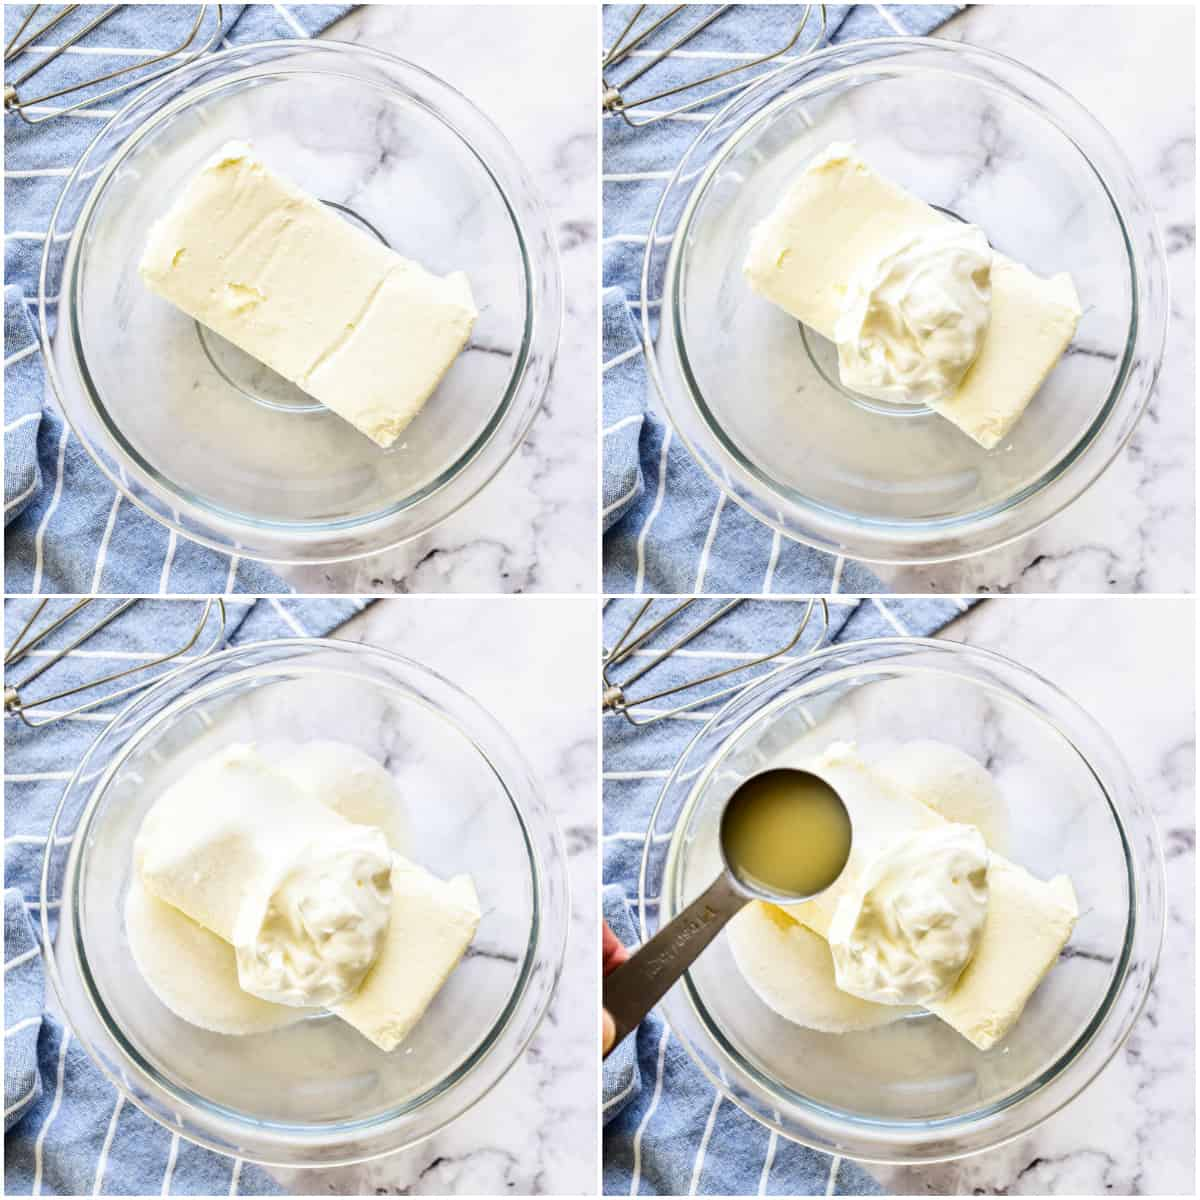 Step by step photos of how to make Fruit Dip